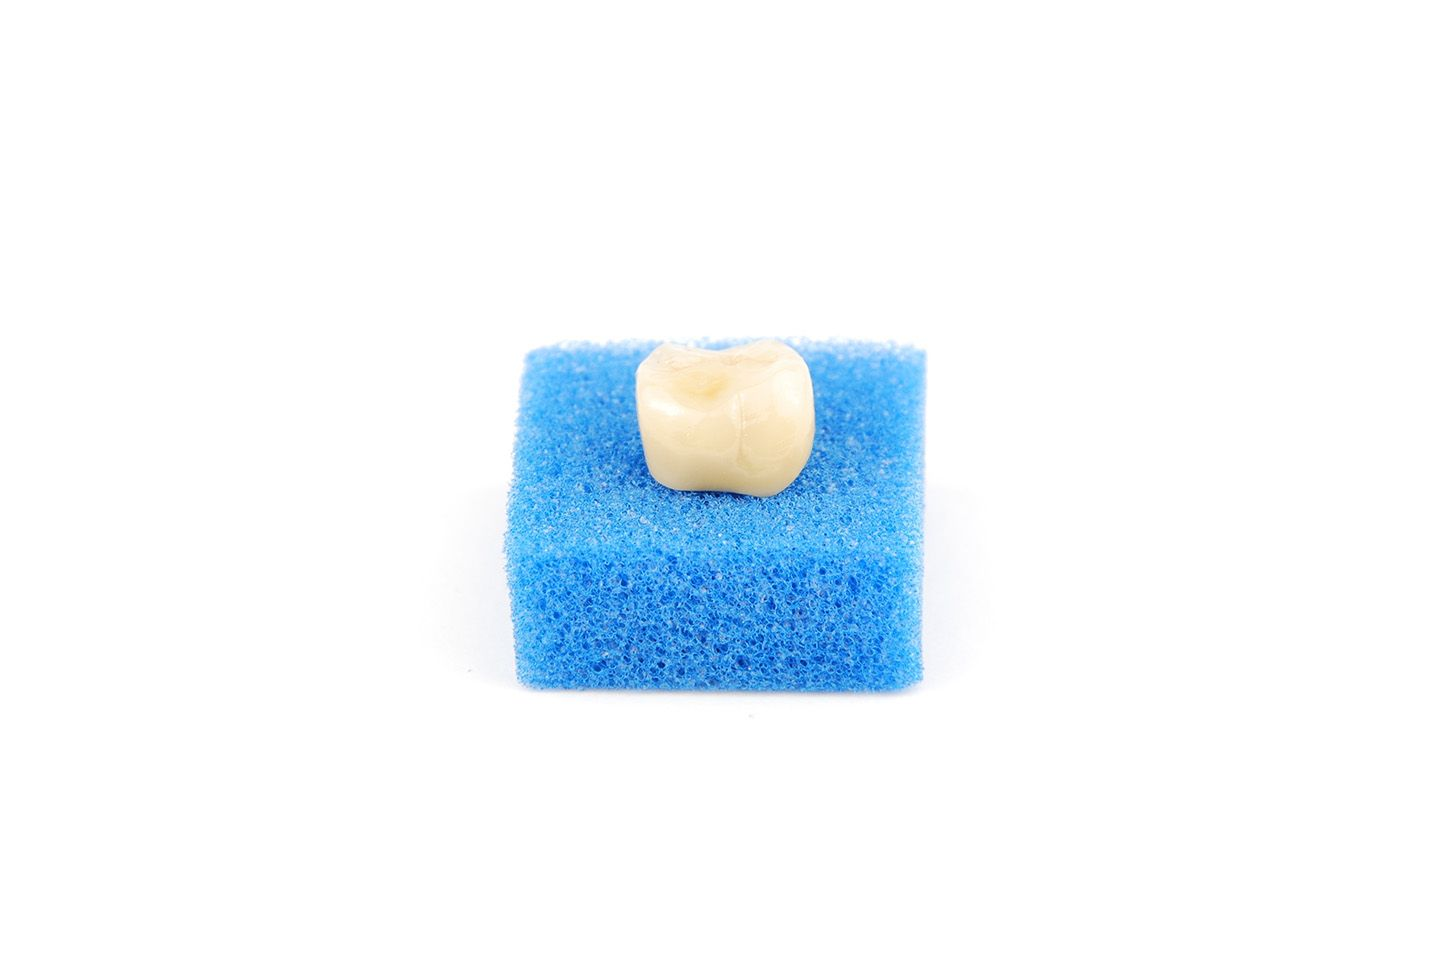 A tooth-colored dental crown